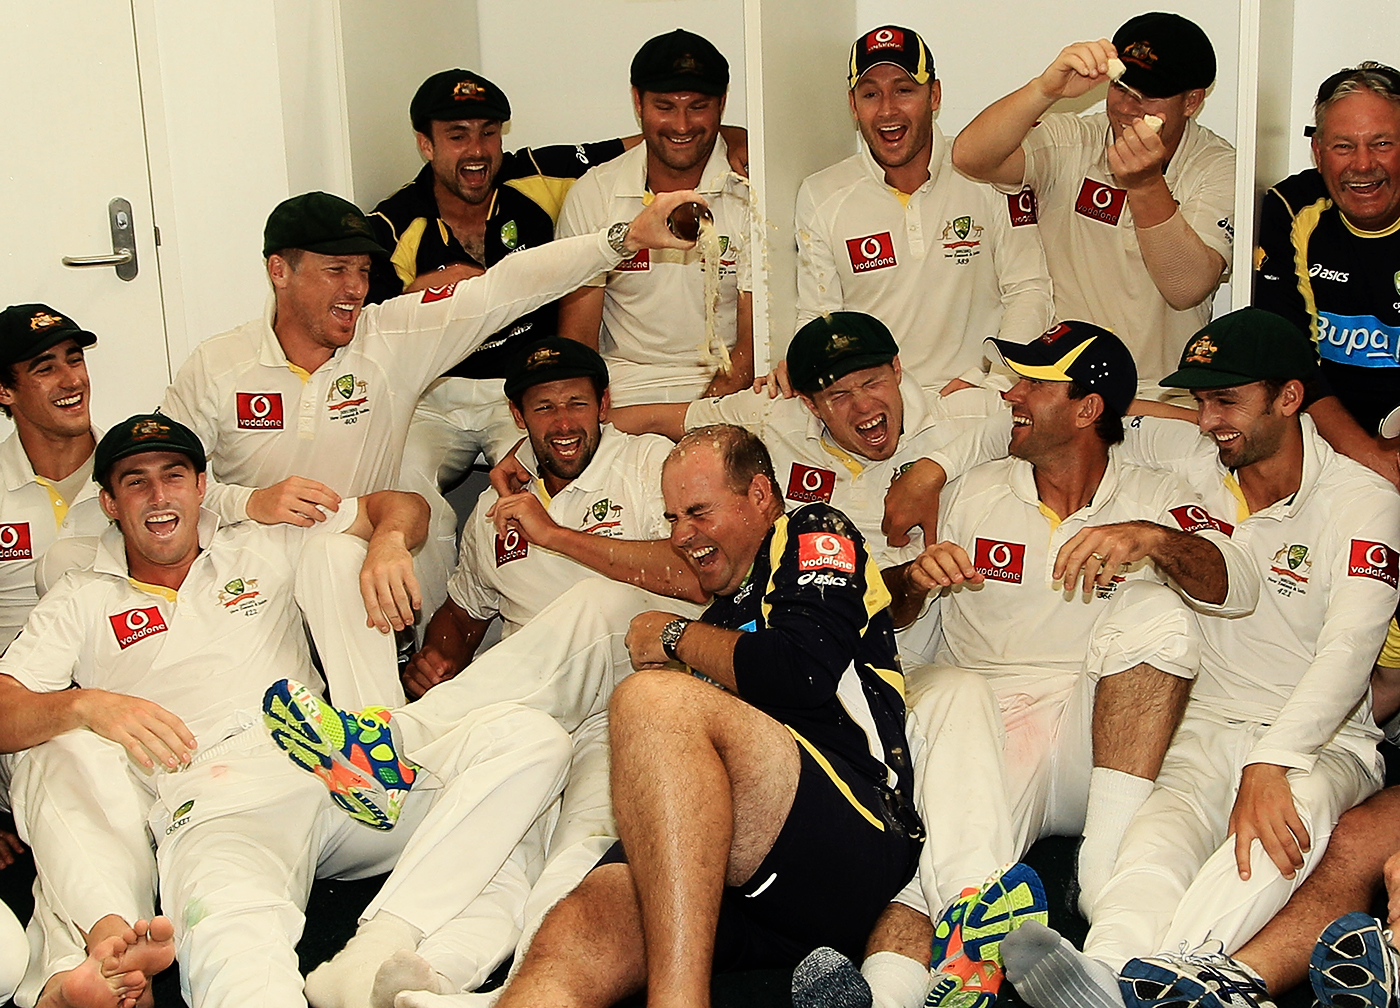 During happier times with Australia